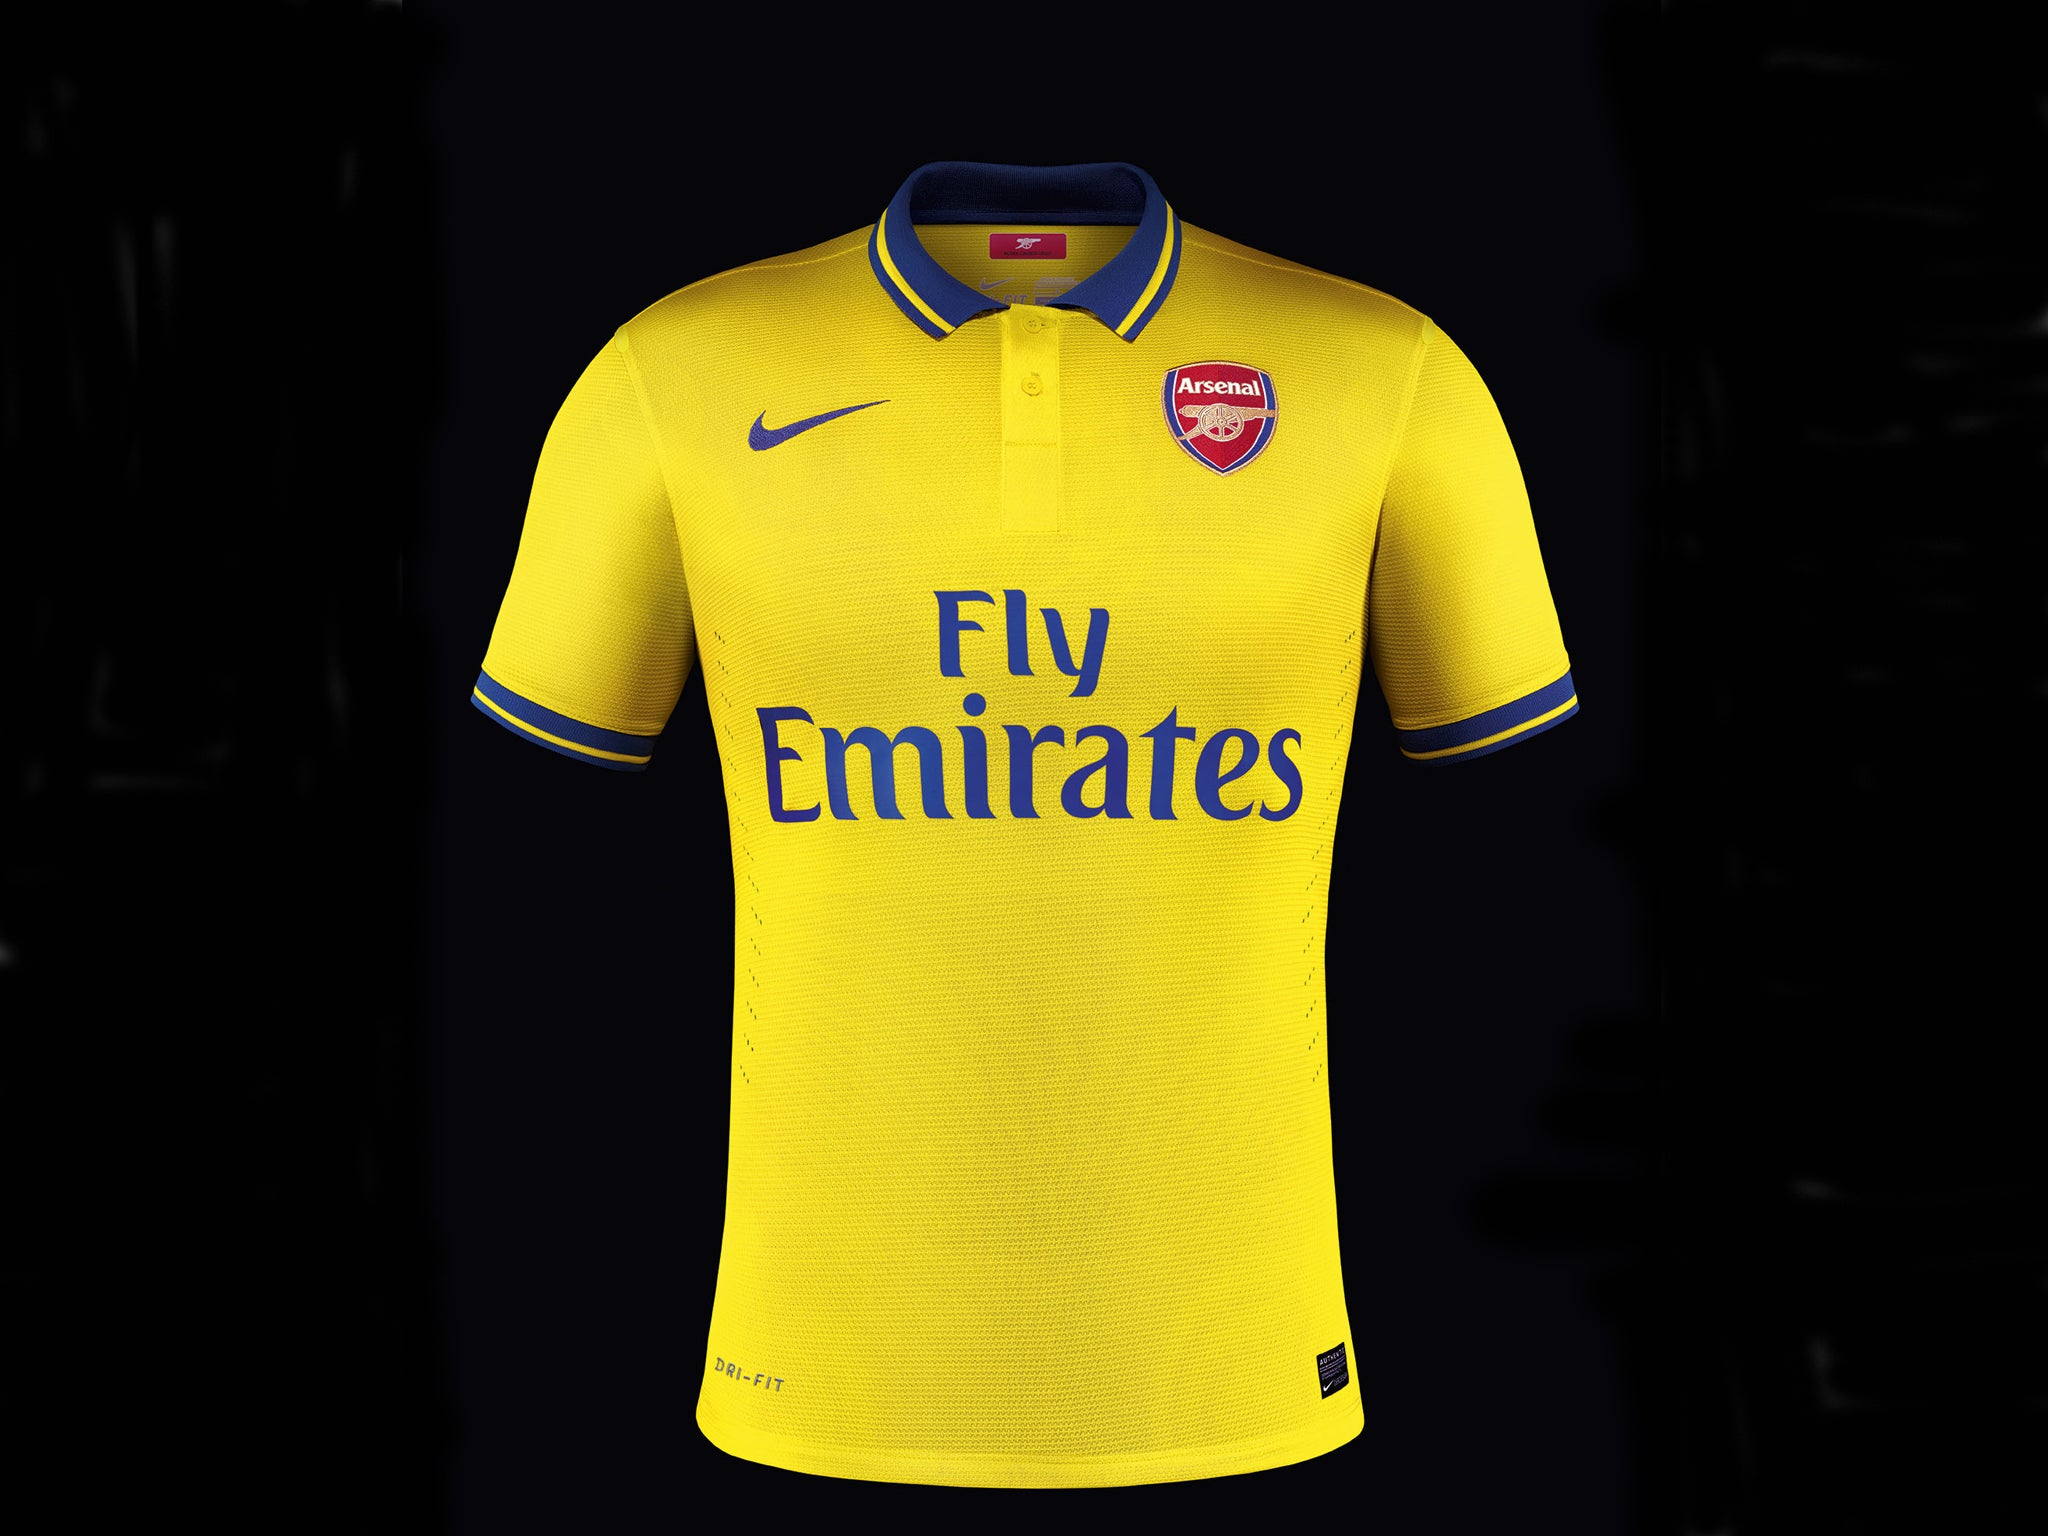 f9182921fce Everton unveil new yellow and blue away strip: The best and worst ...